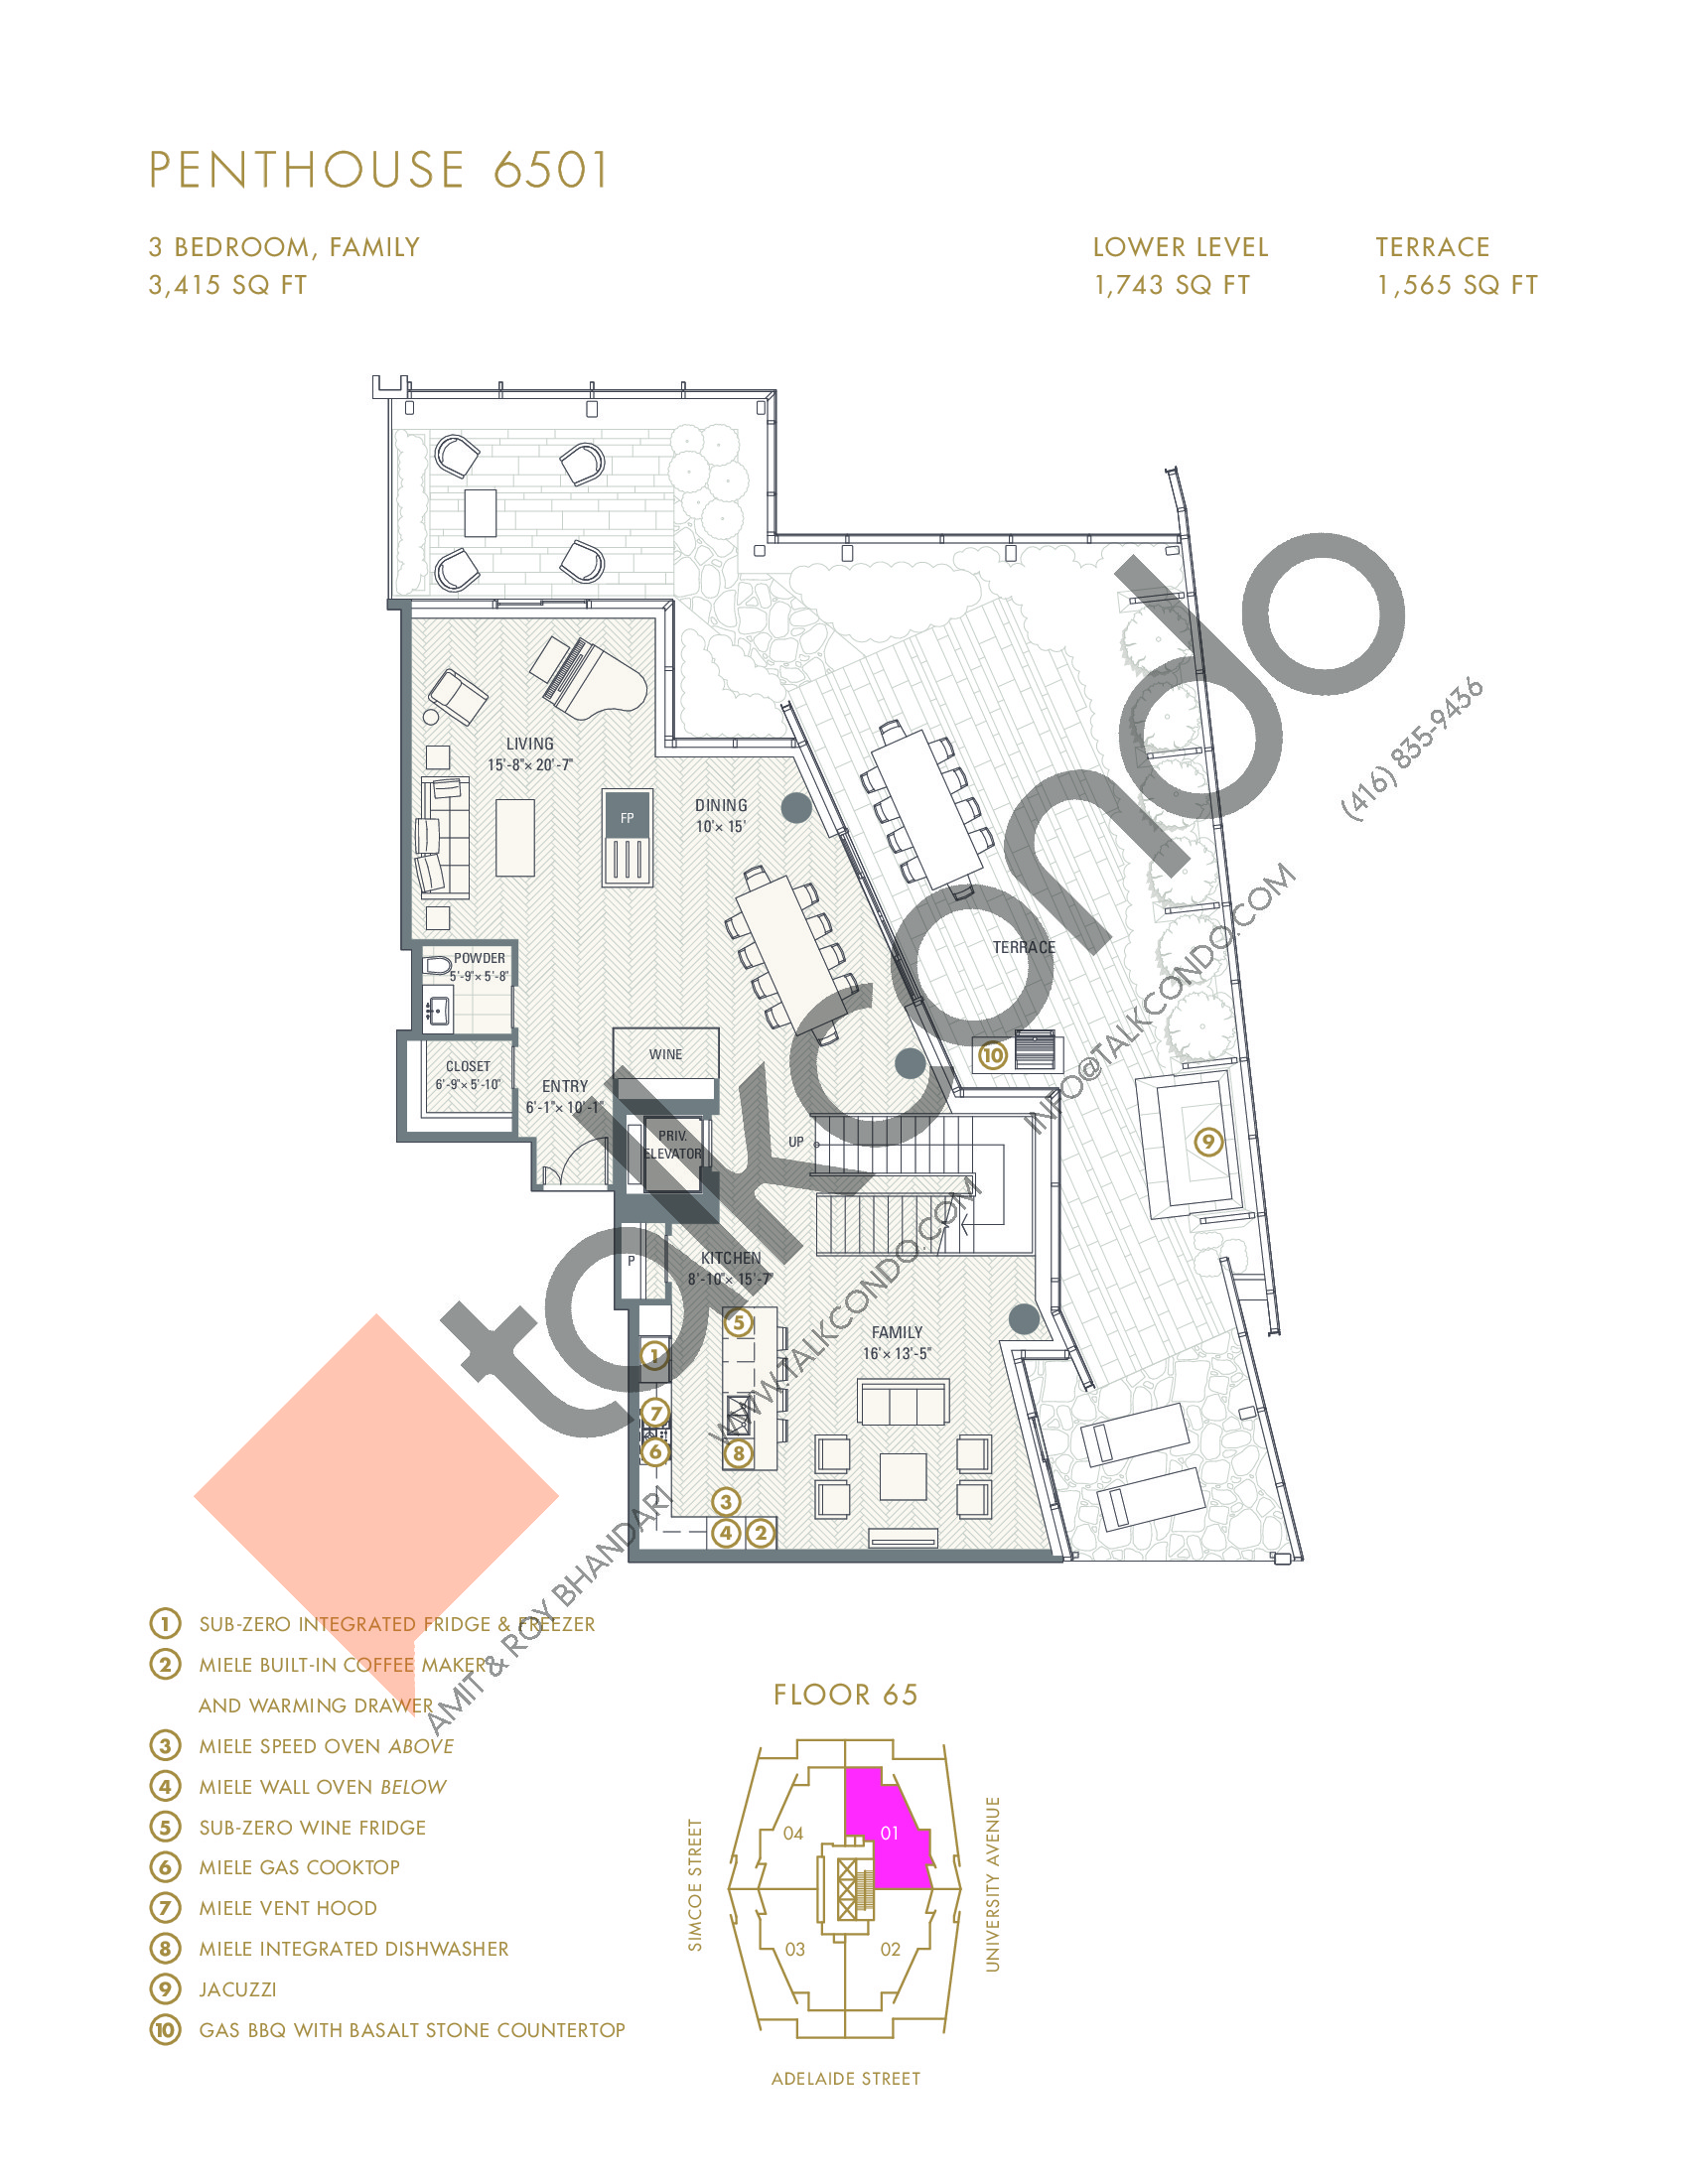 Shangri La Hotel Amp Residences Floor Plans Prices